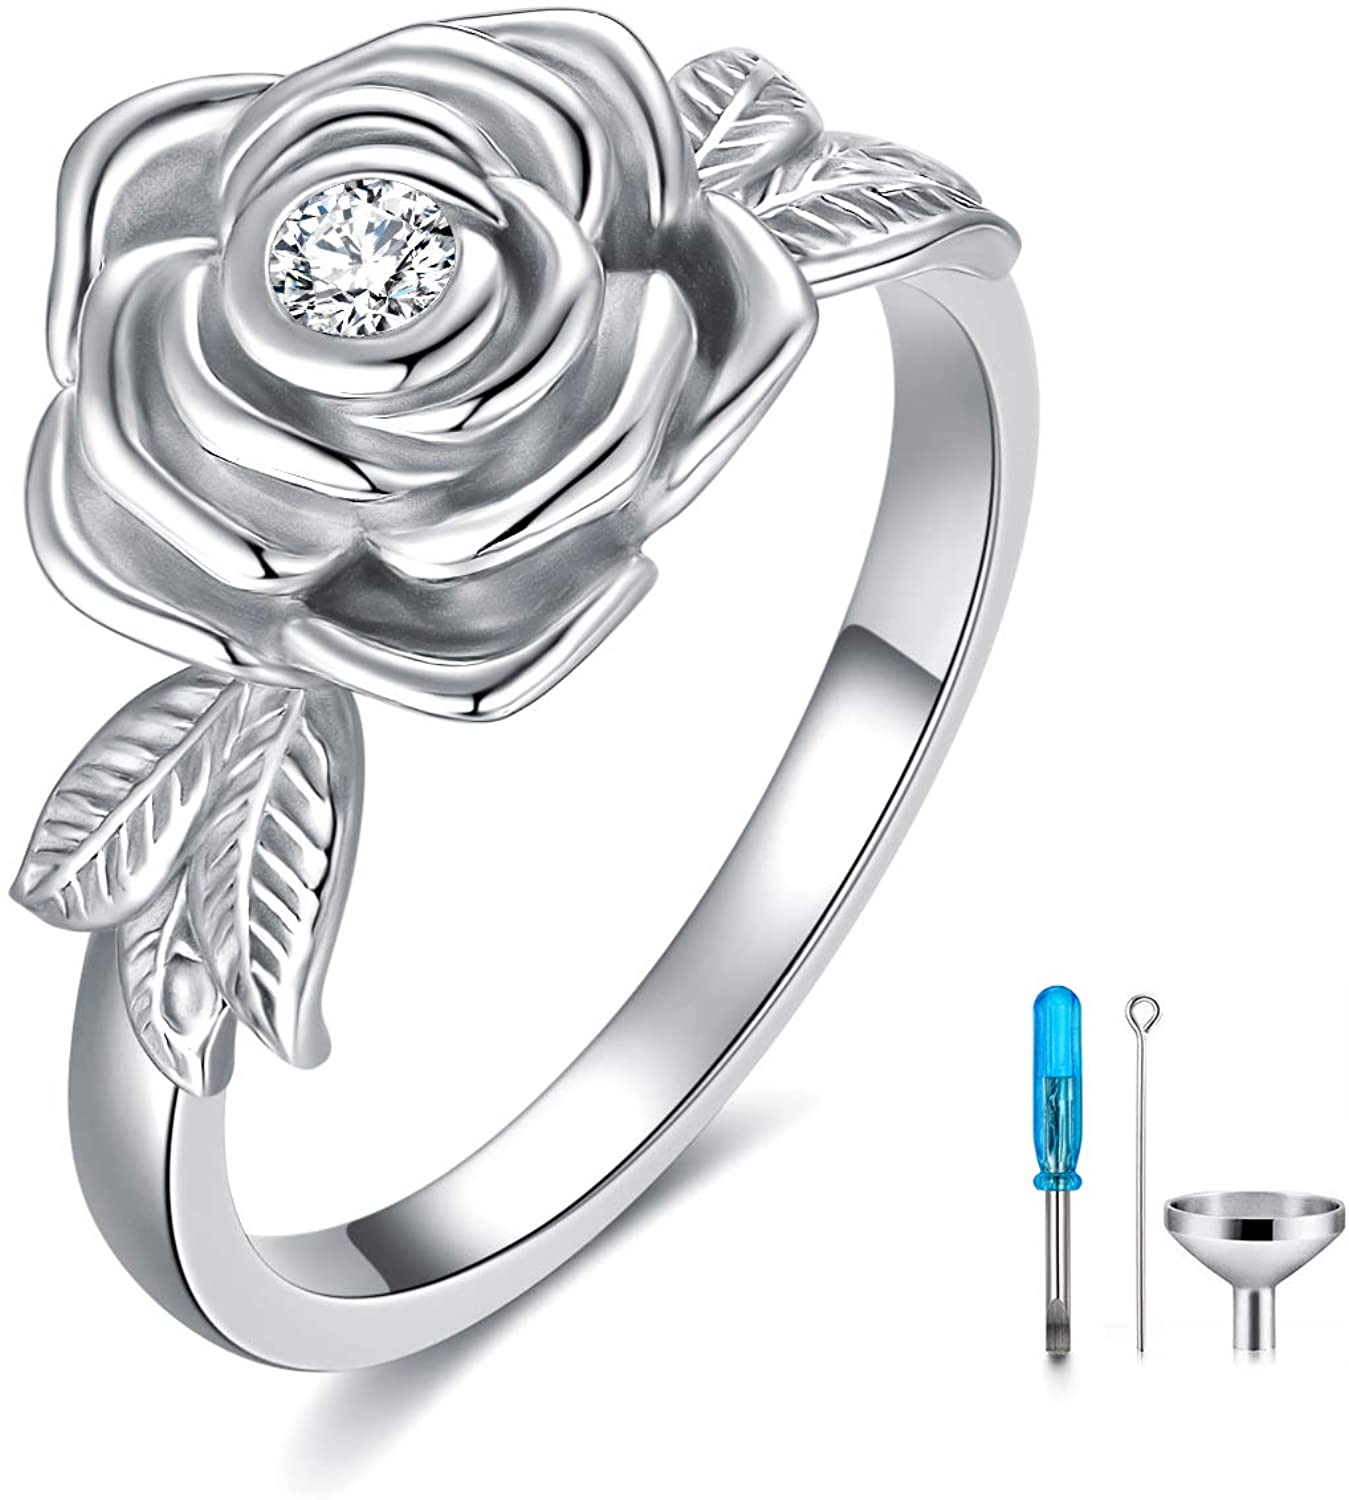 925 Sterling Silver Rose Flower Sales of SALE items from new works Boston Mall Cremation O Holds Ring Urn Loved